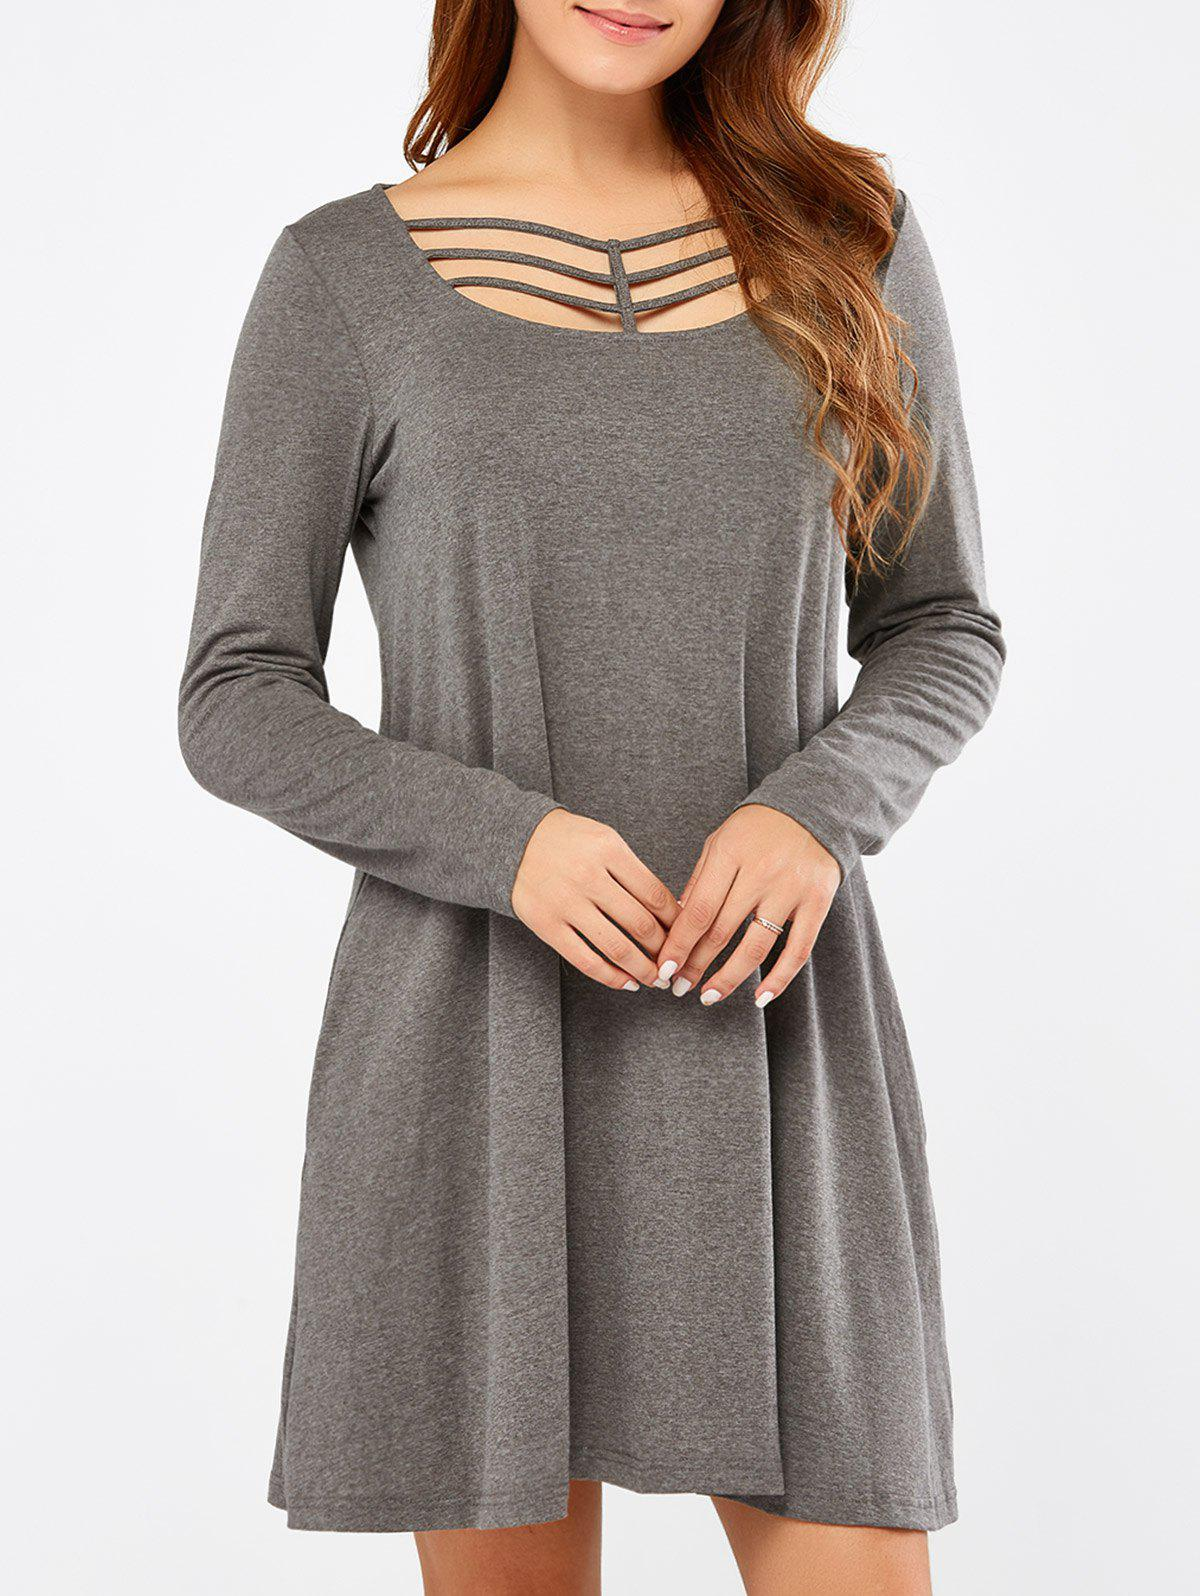 New Long Sleeve Strappy A Line Casual Short Dress